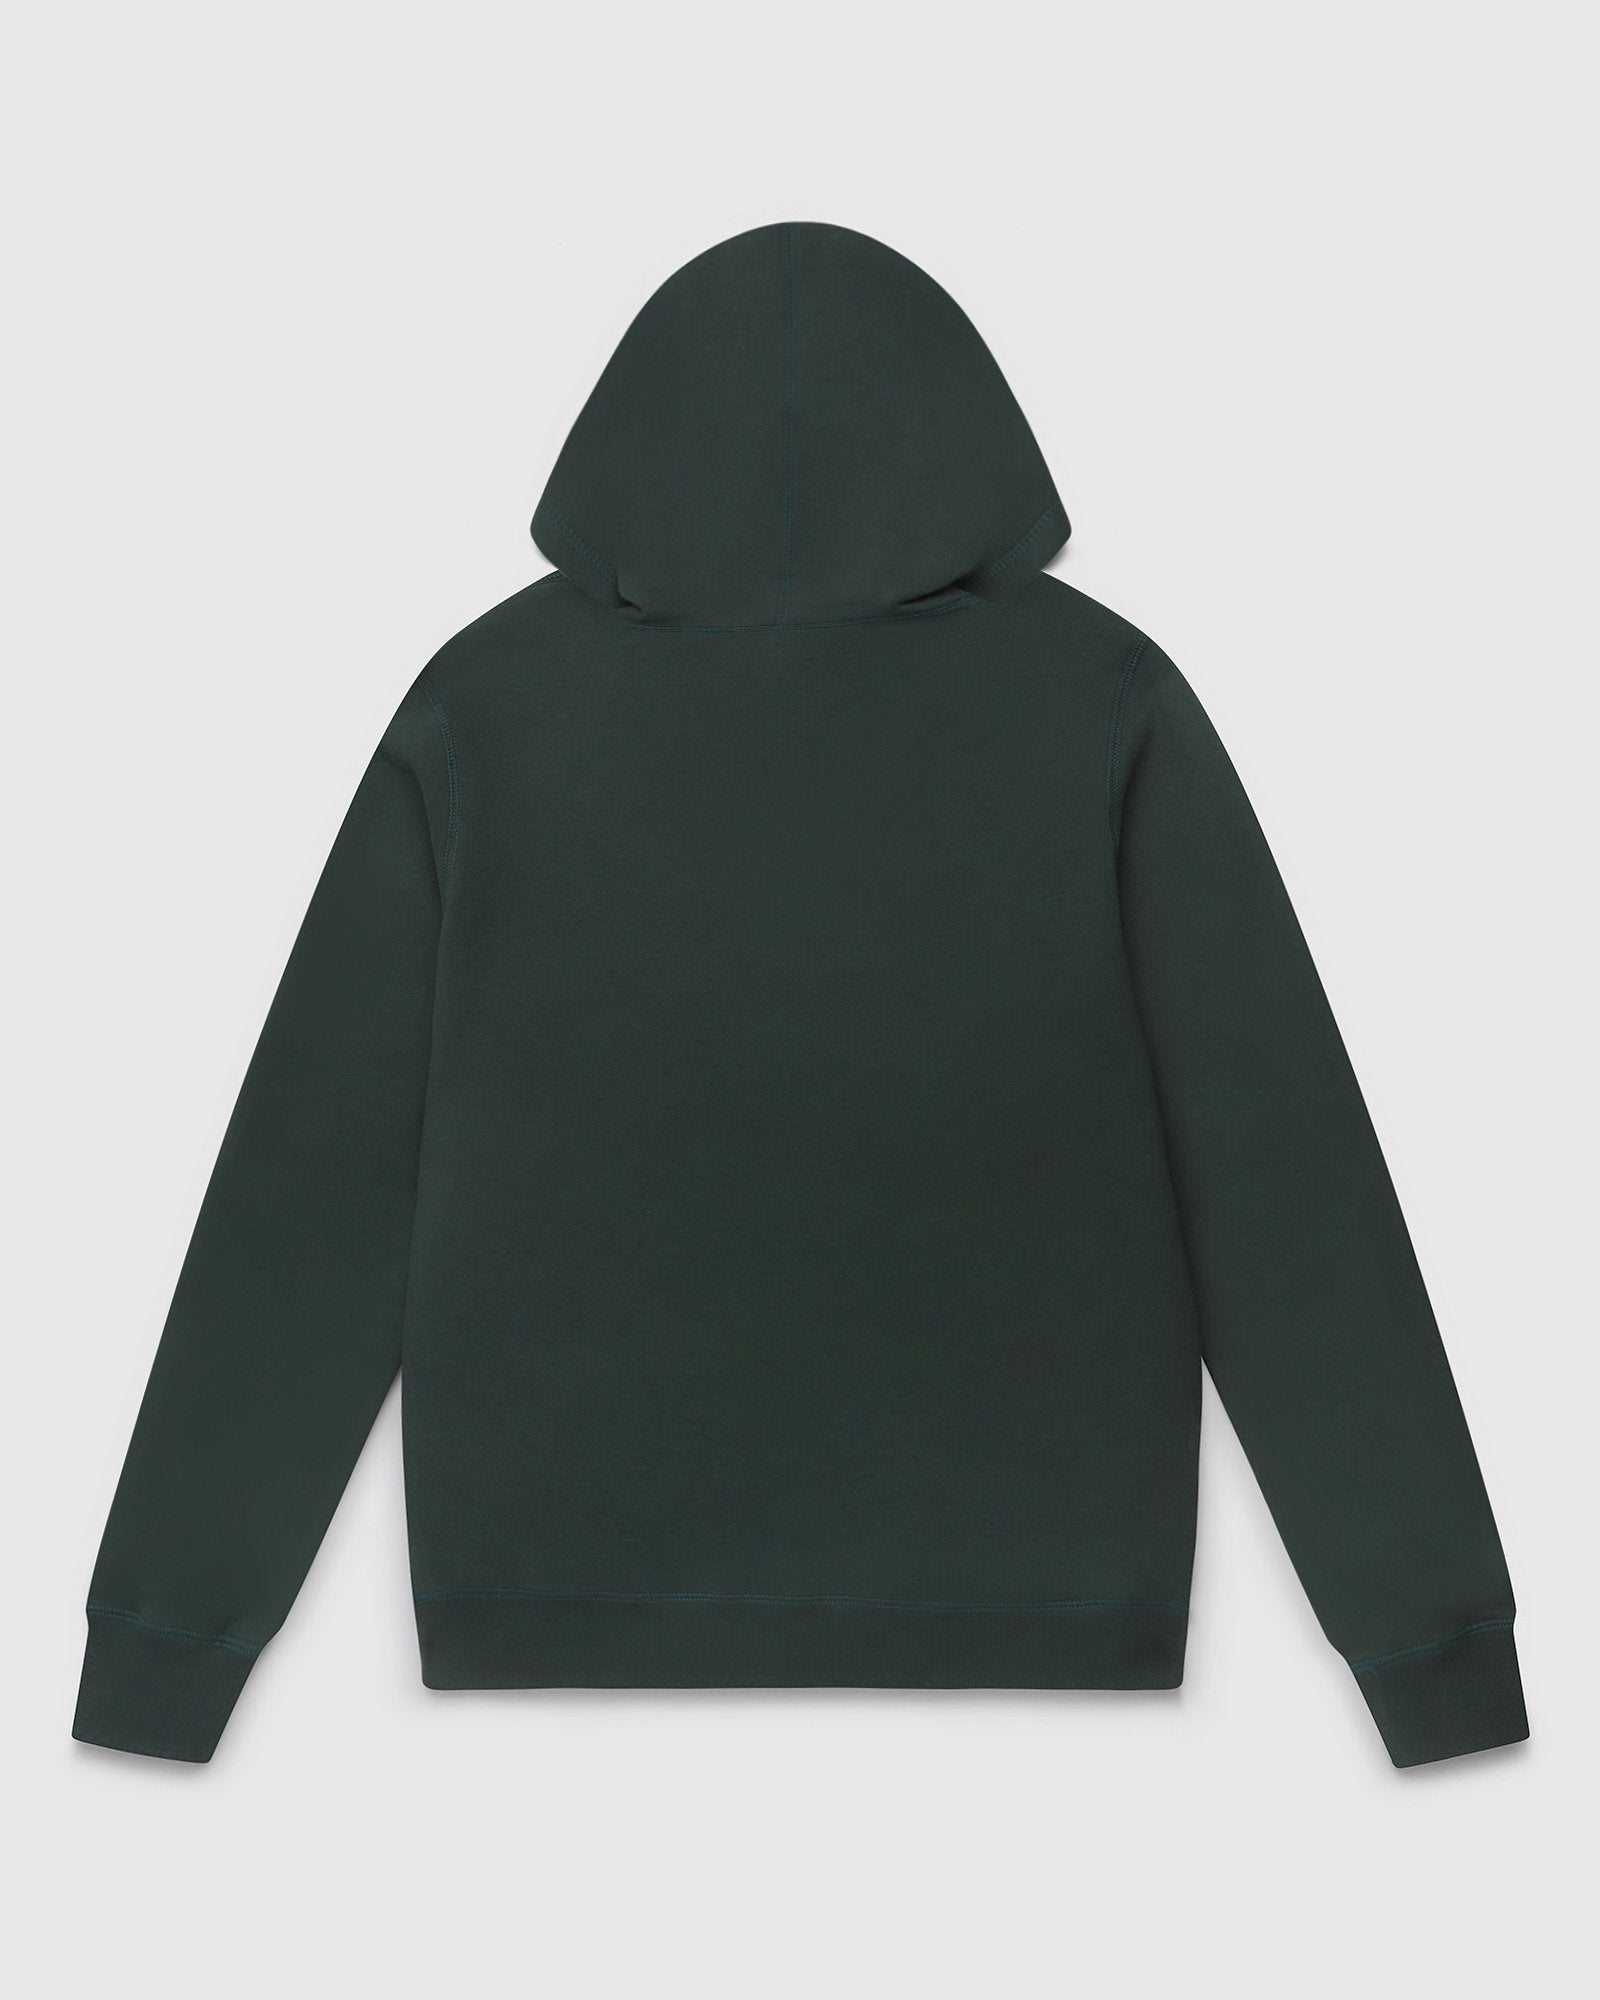 CLASSIC OWL HOODIE - EVERGREEN IMAGE #2